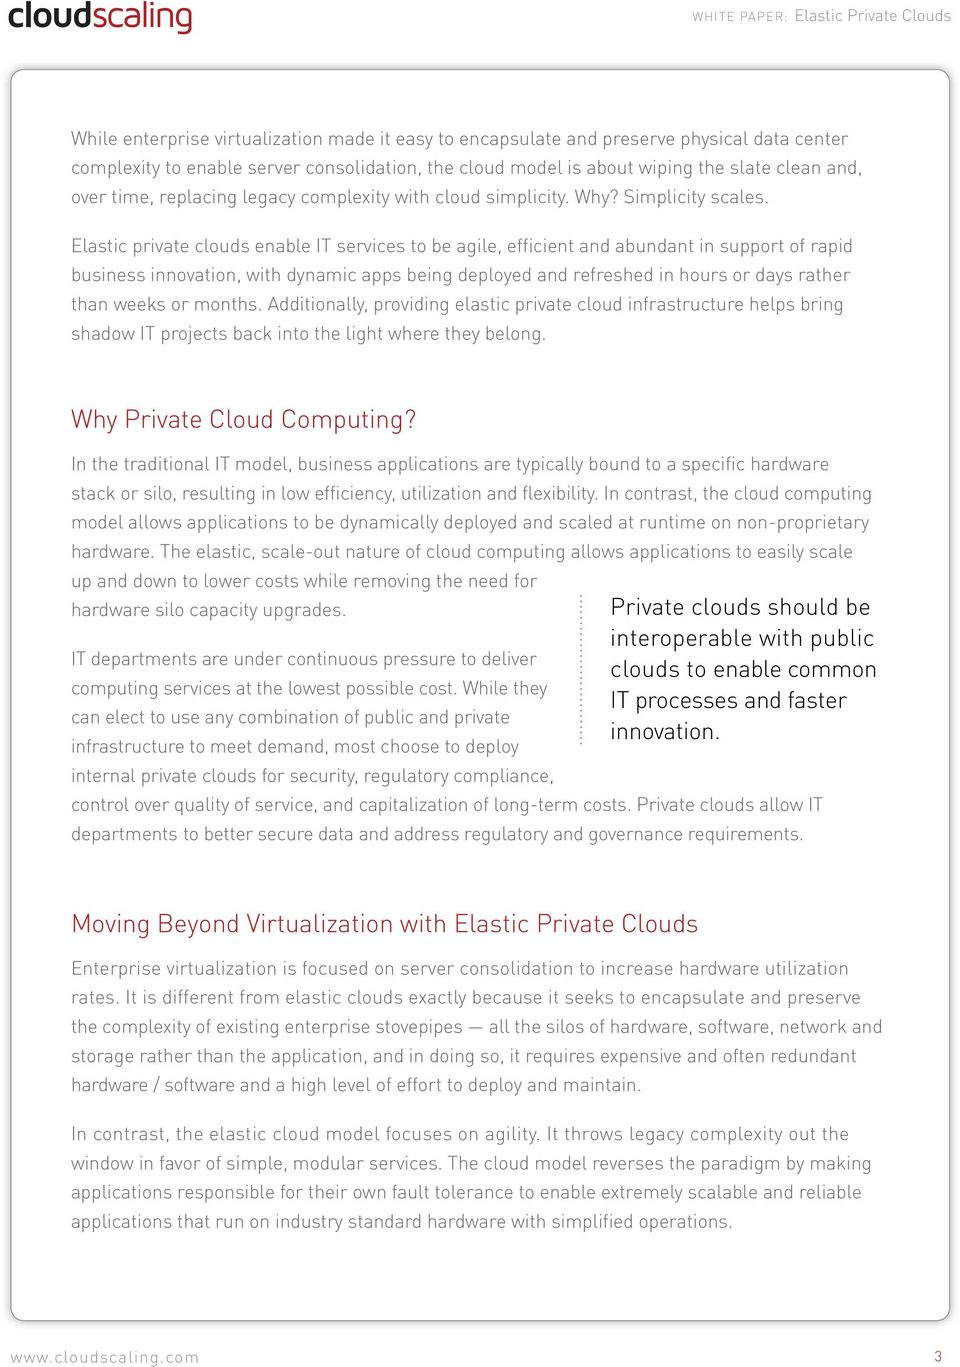 Elastic private clouds enable IT services to be agile, efficient and abundant in support of rapid business innovation, with dynamic apps being deployed and refreshed in hours or days rather than